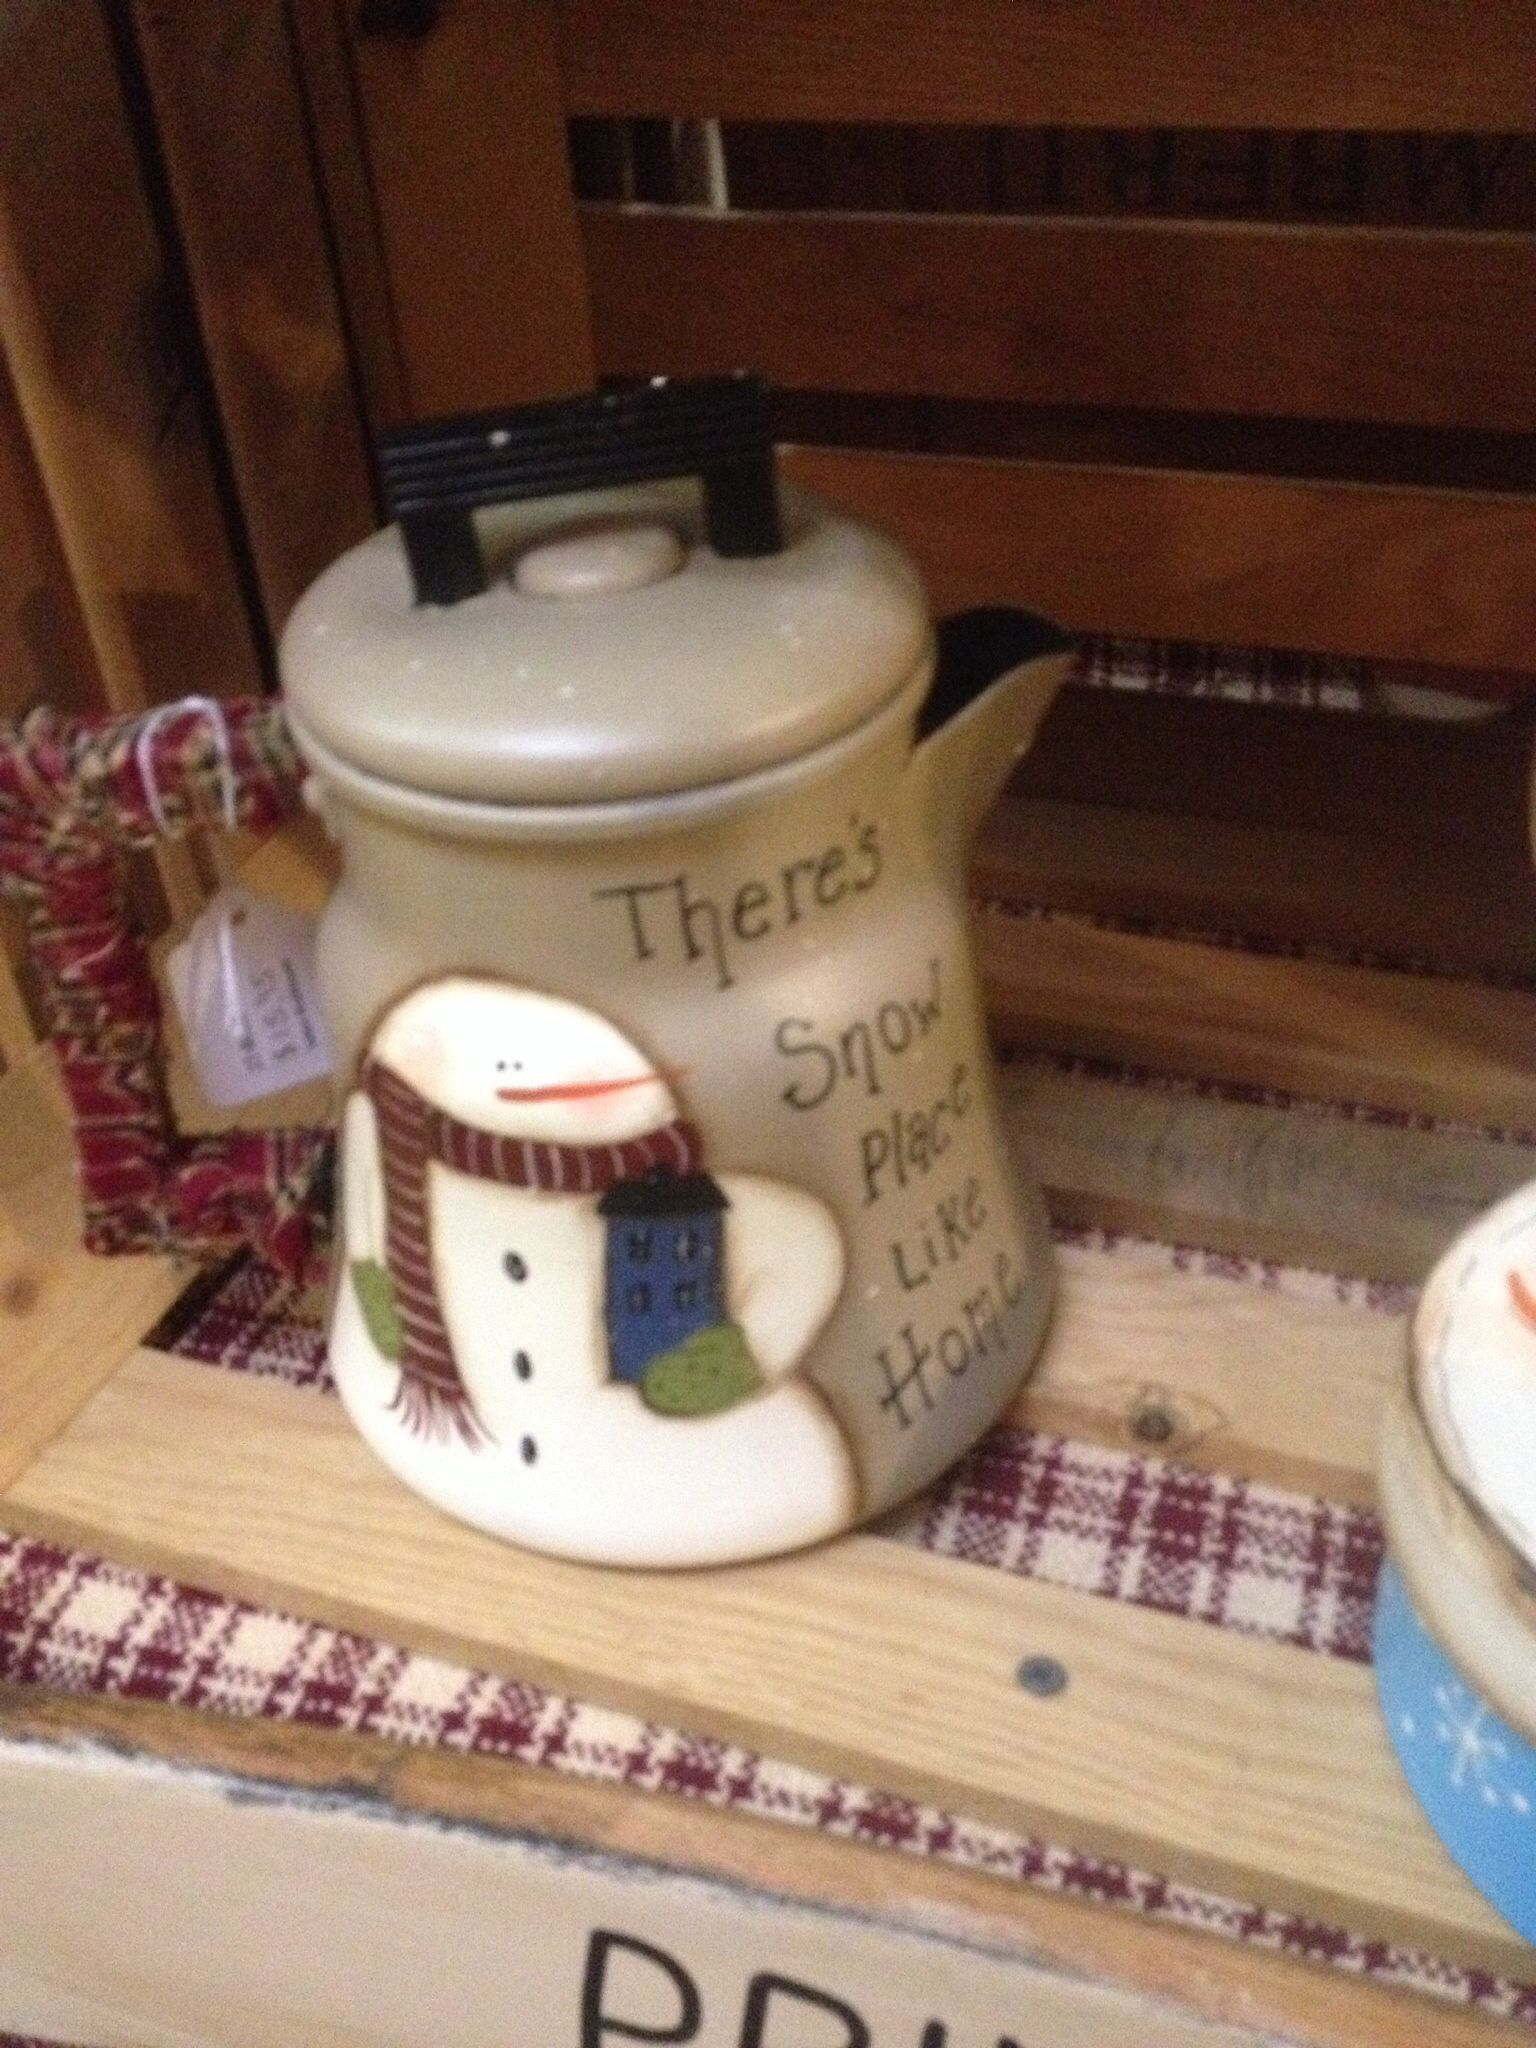 Snow place like home teapot painted by Sharren